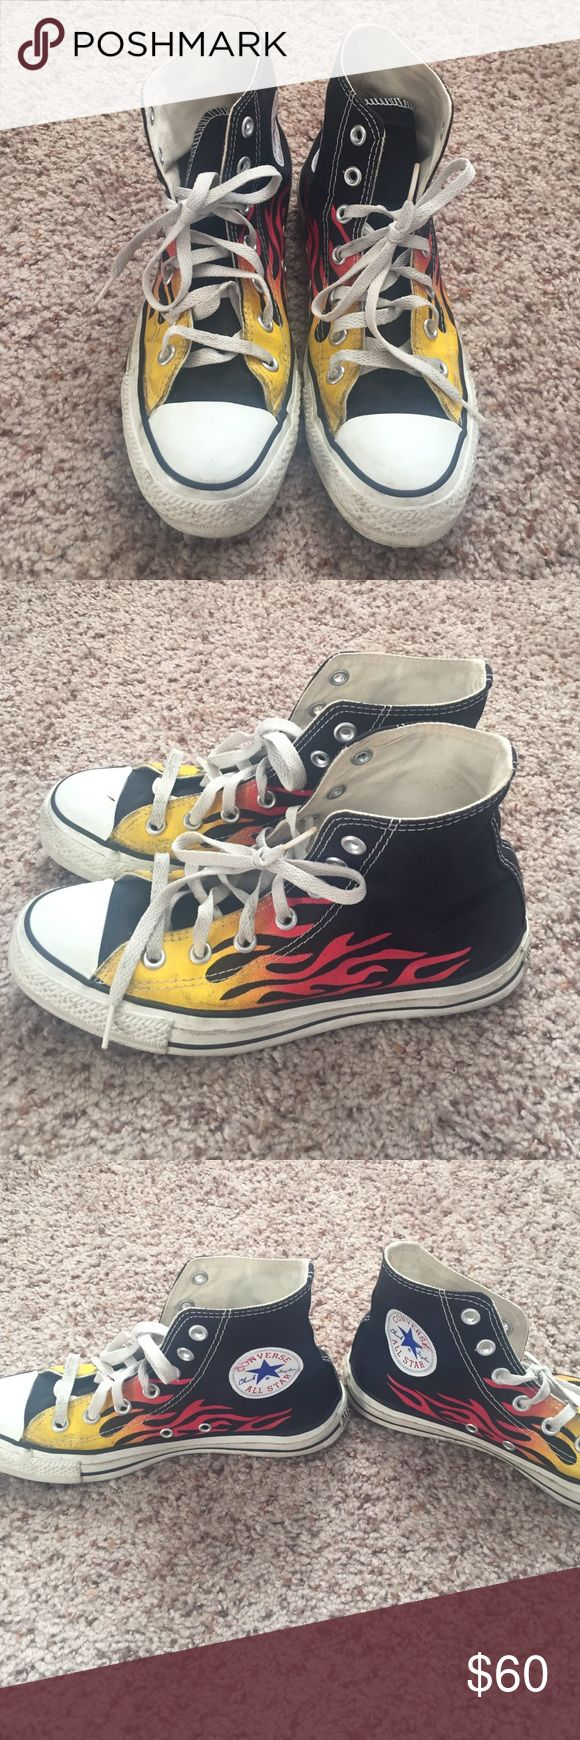 Rare flame converse chuck Taylor's Gently worn 5 1/2 men 7 1/5 women Converse Shoes Sneakers